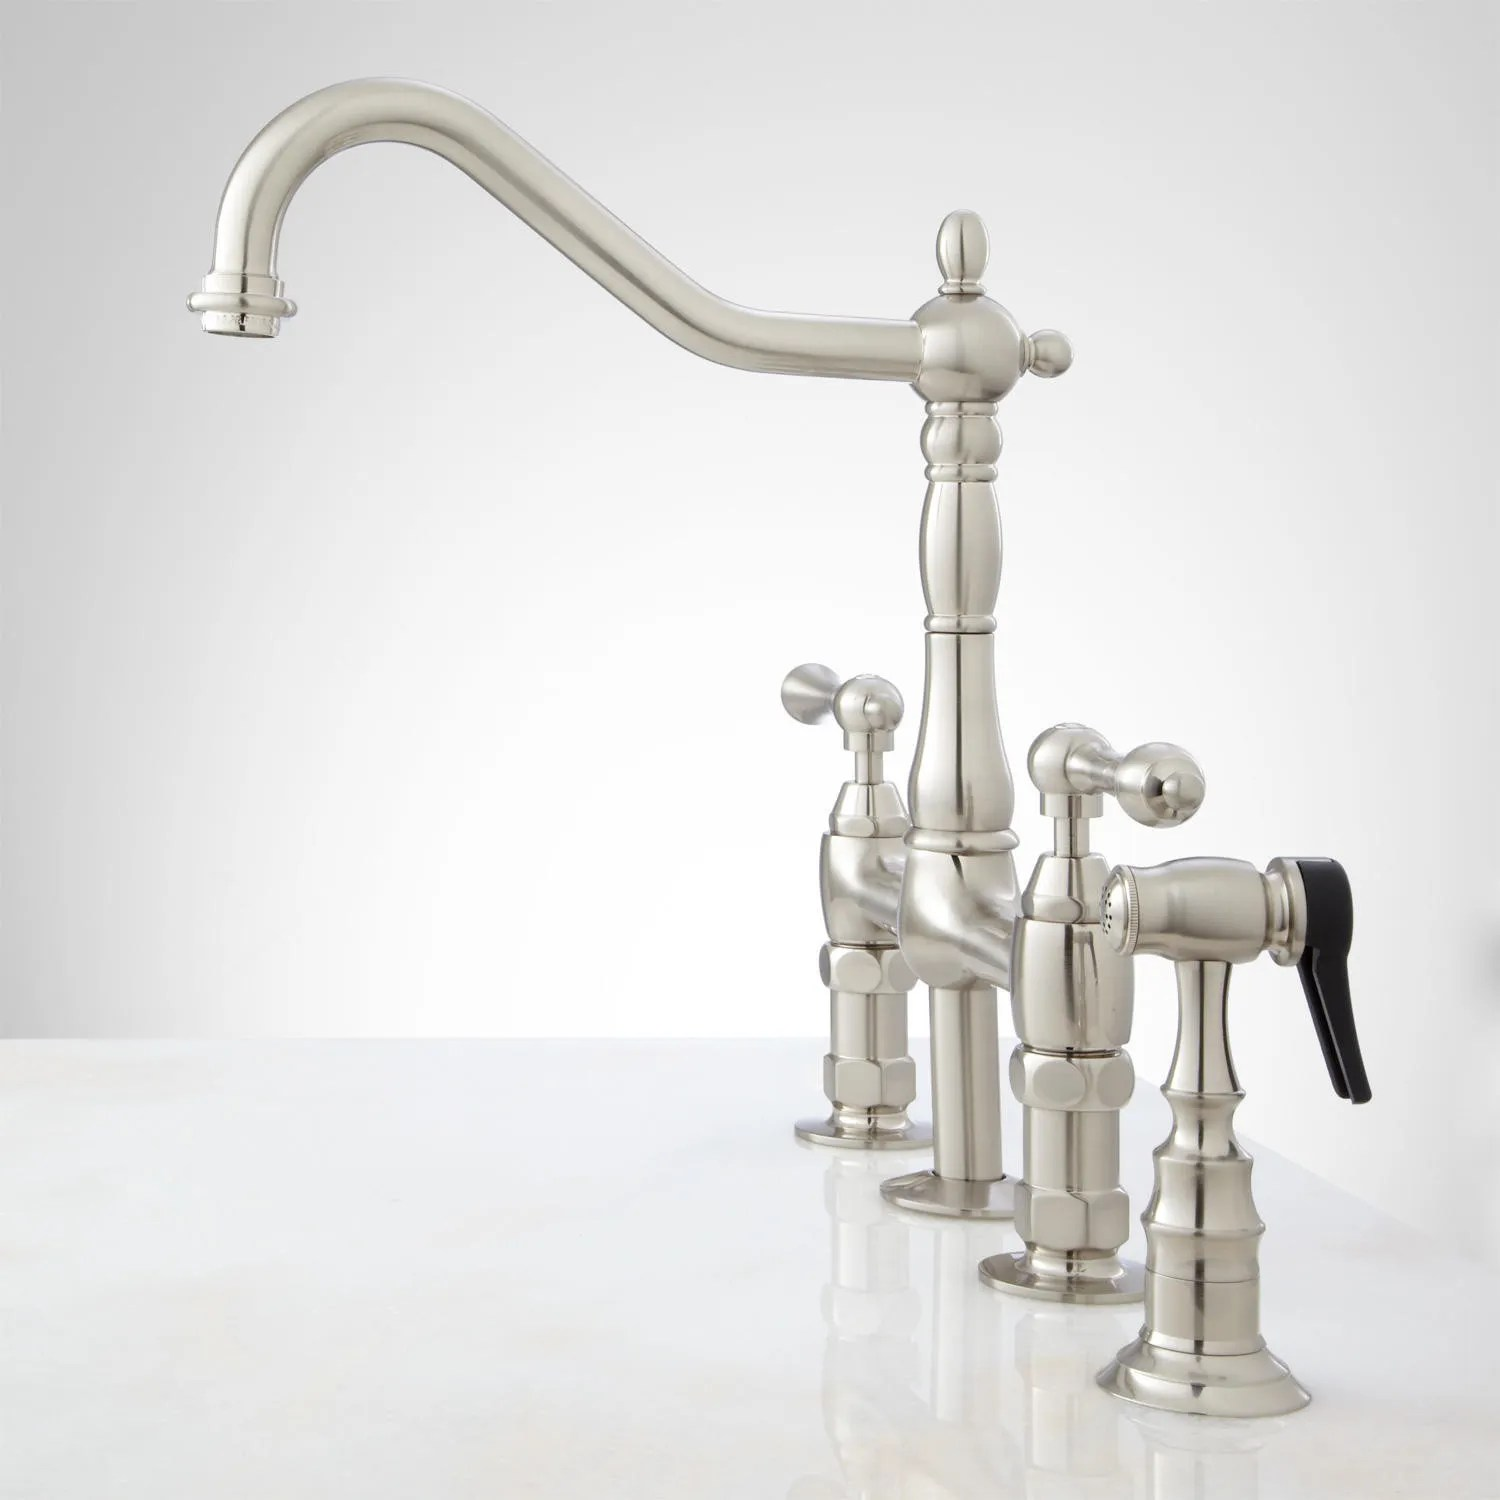 bellevue bridge kitchen faucet with brass sprayer lever handles country kitchen faucets Brushed Nickel Side